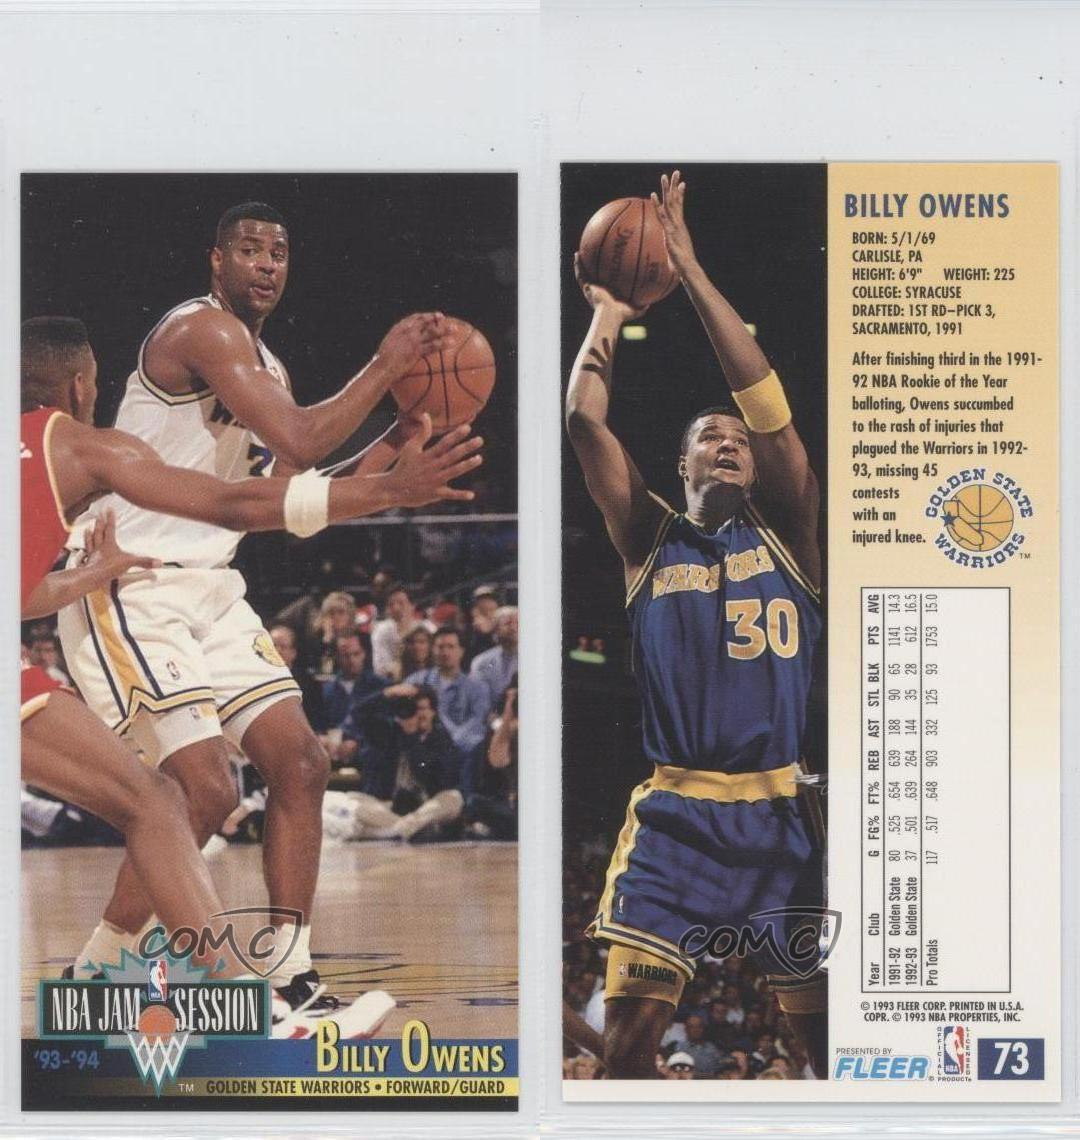 1993-94 NBA Jam Session #73 Billy Owens Golden State